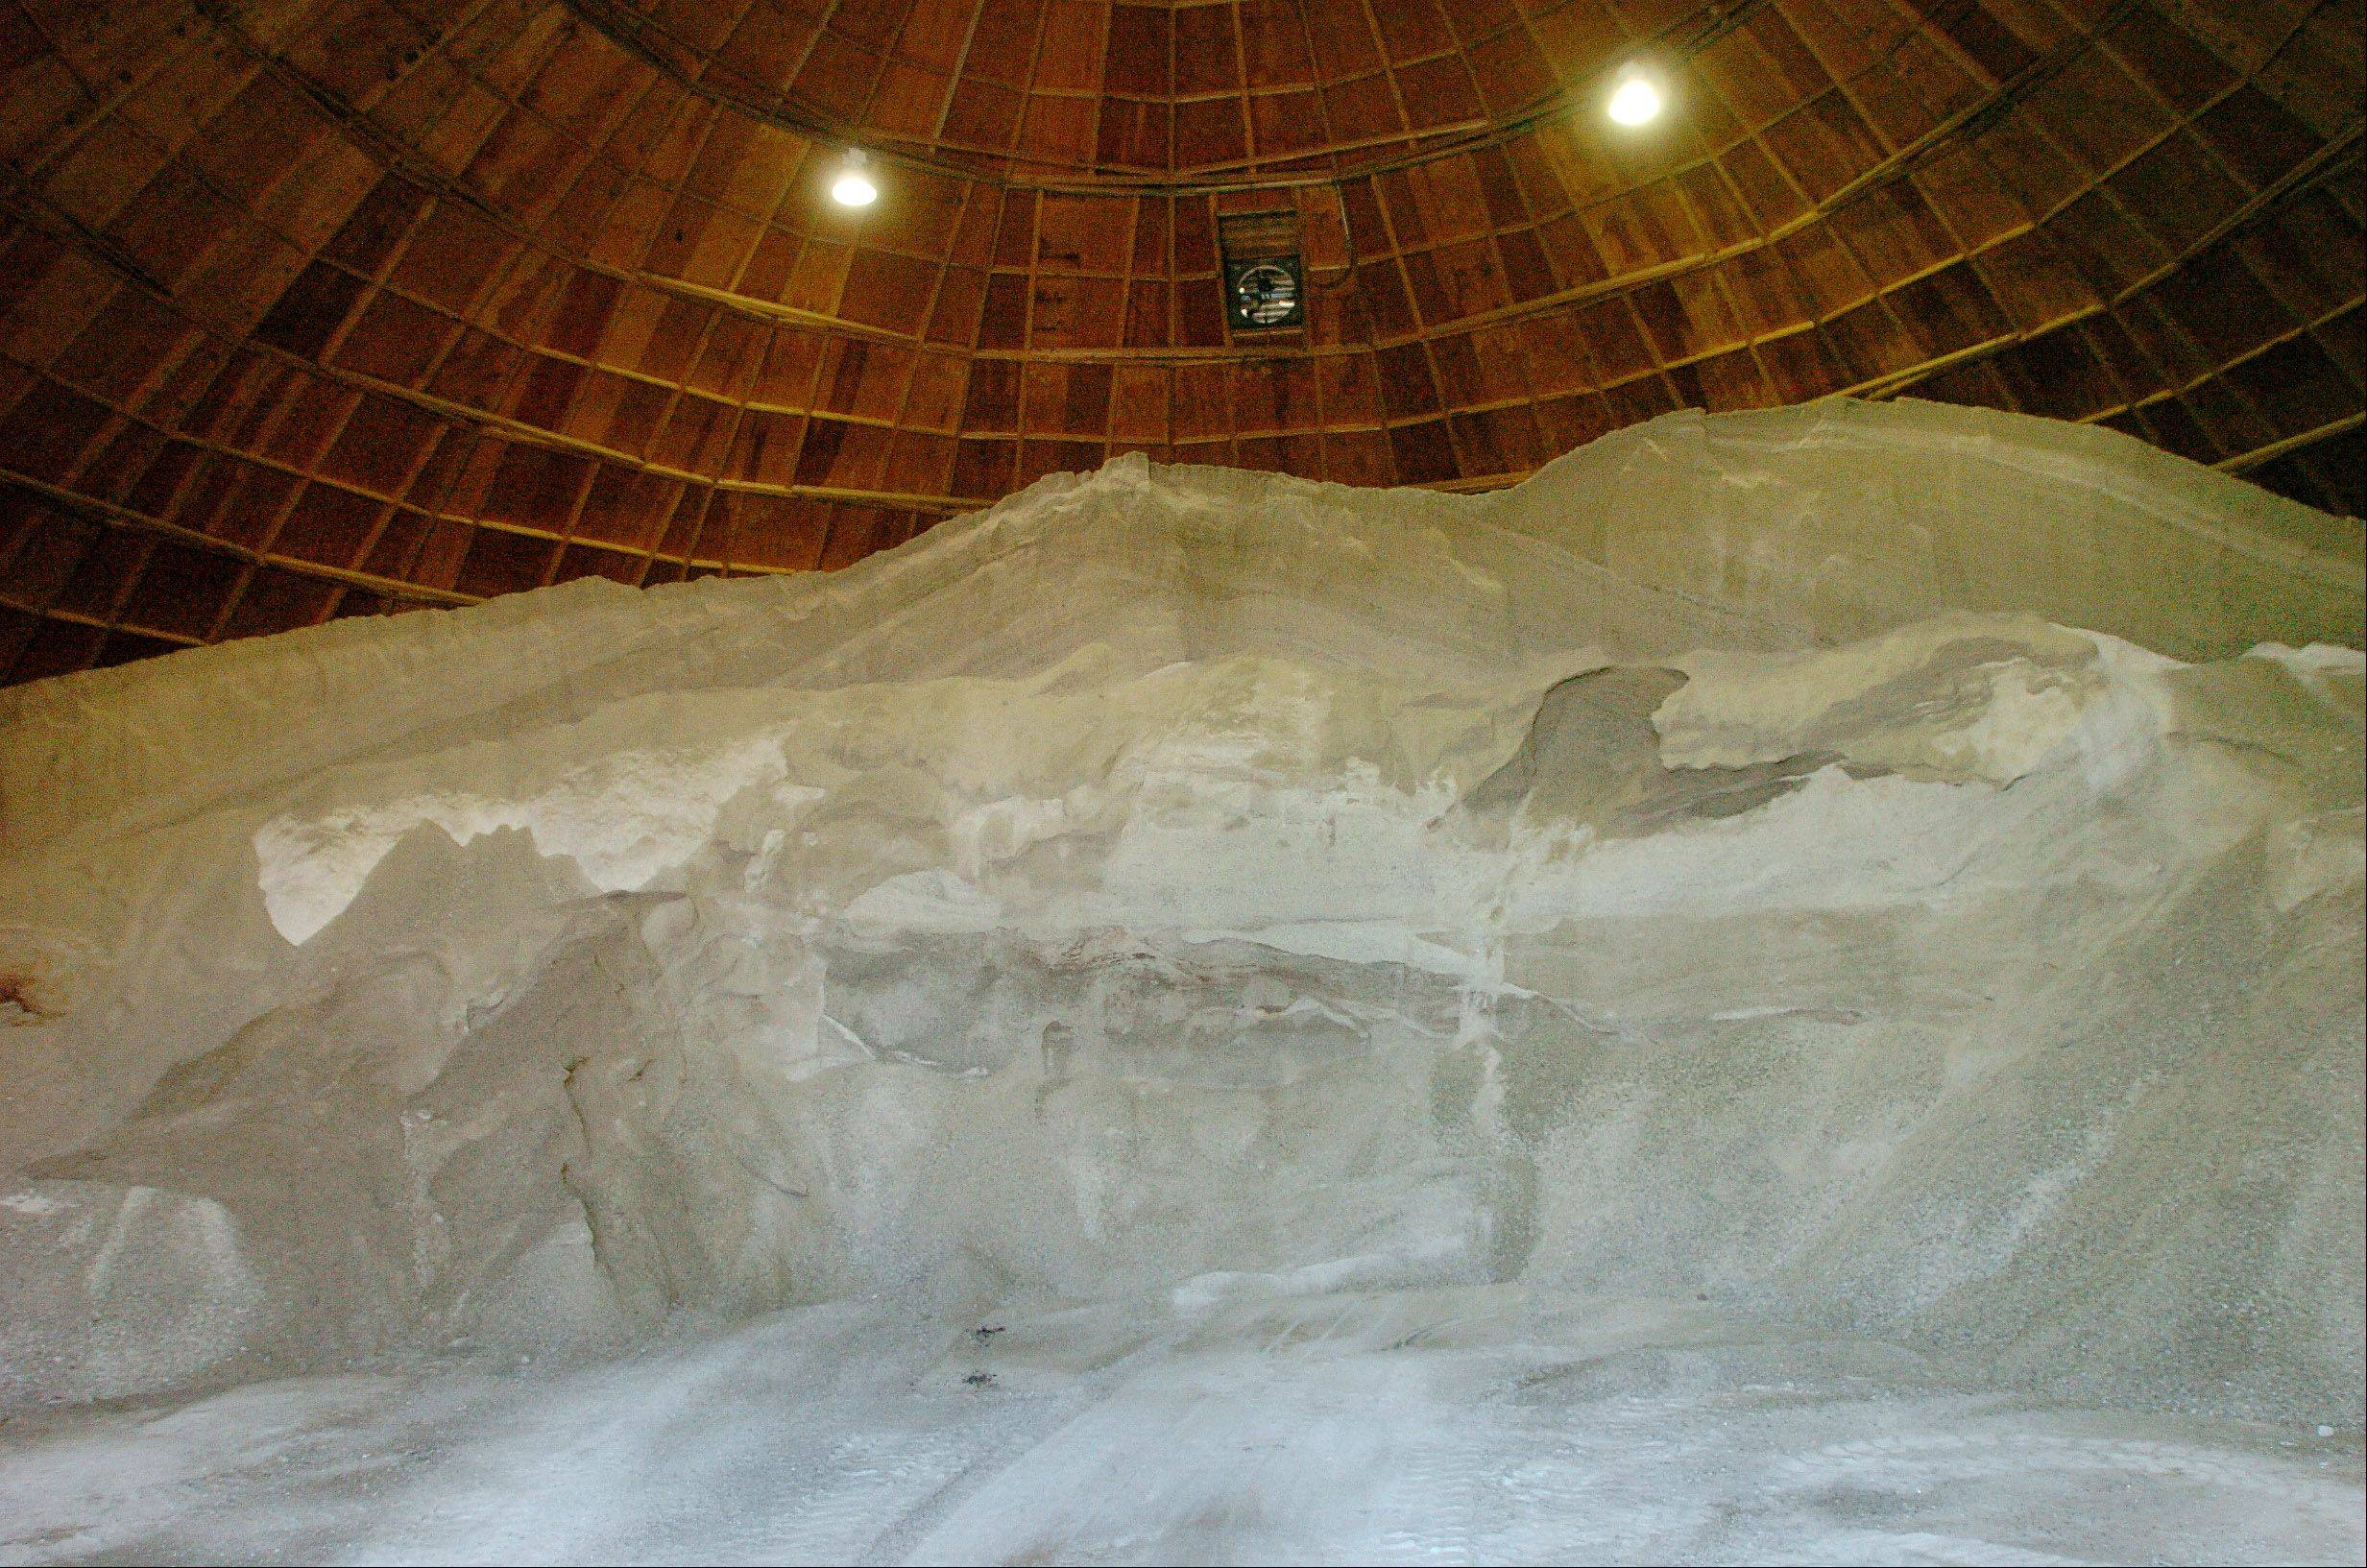 The salt pile at the Arlington Heights Public Works facility on Ridge Avenue.